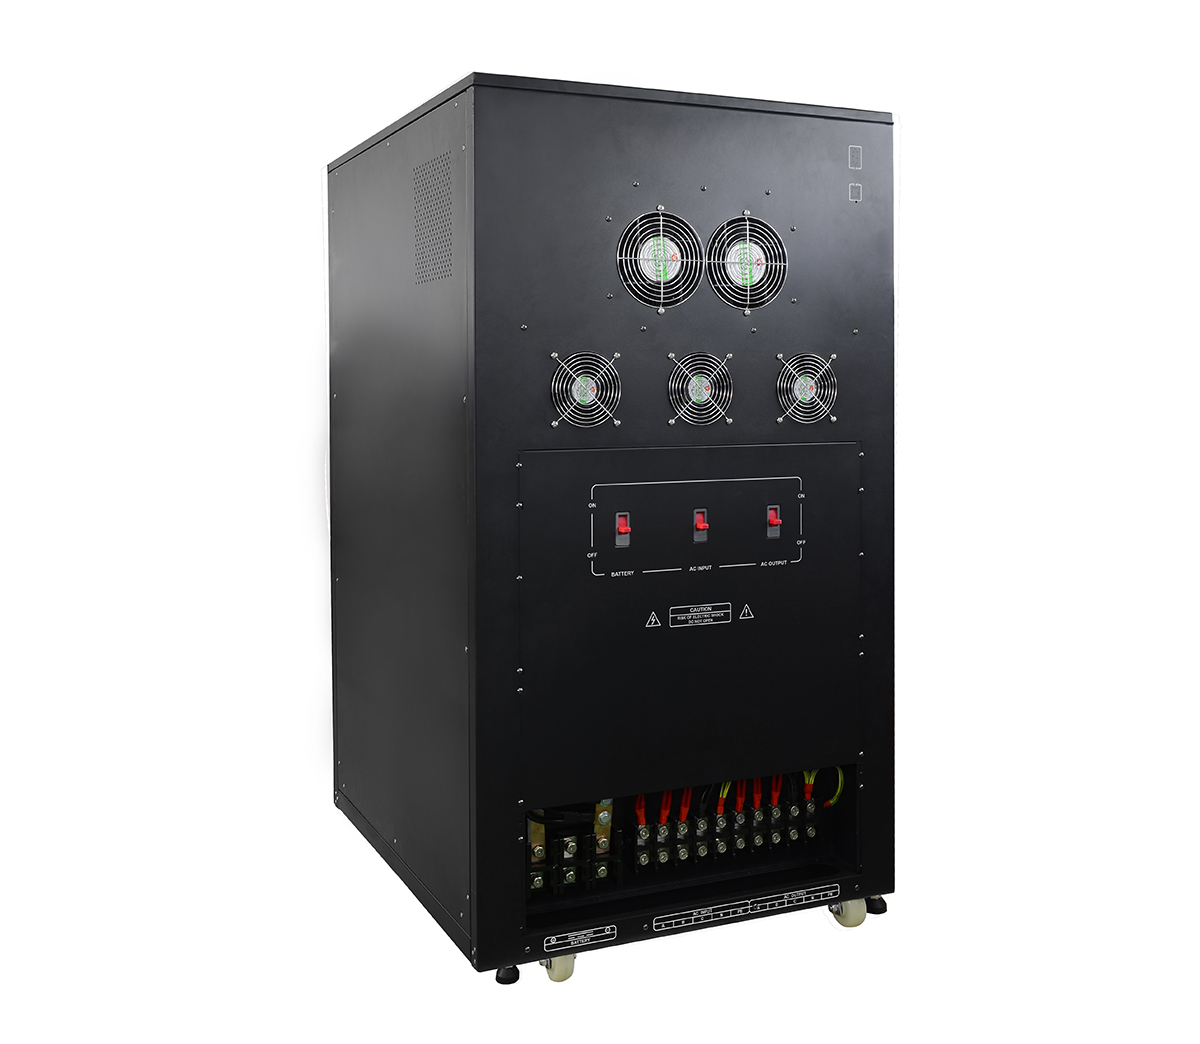 3 phase off grid inverter 100-150kva